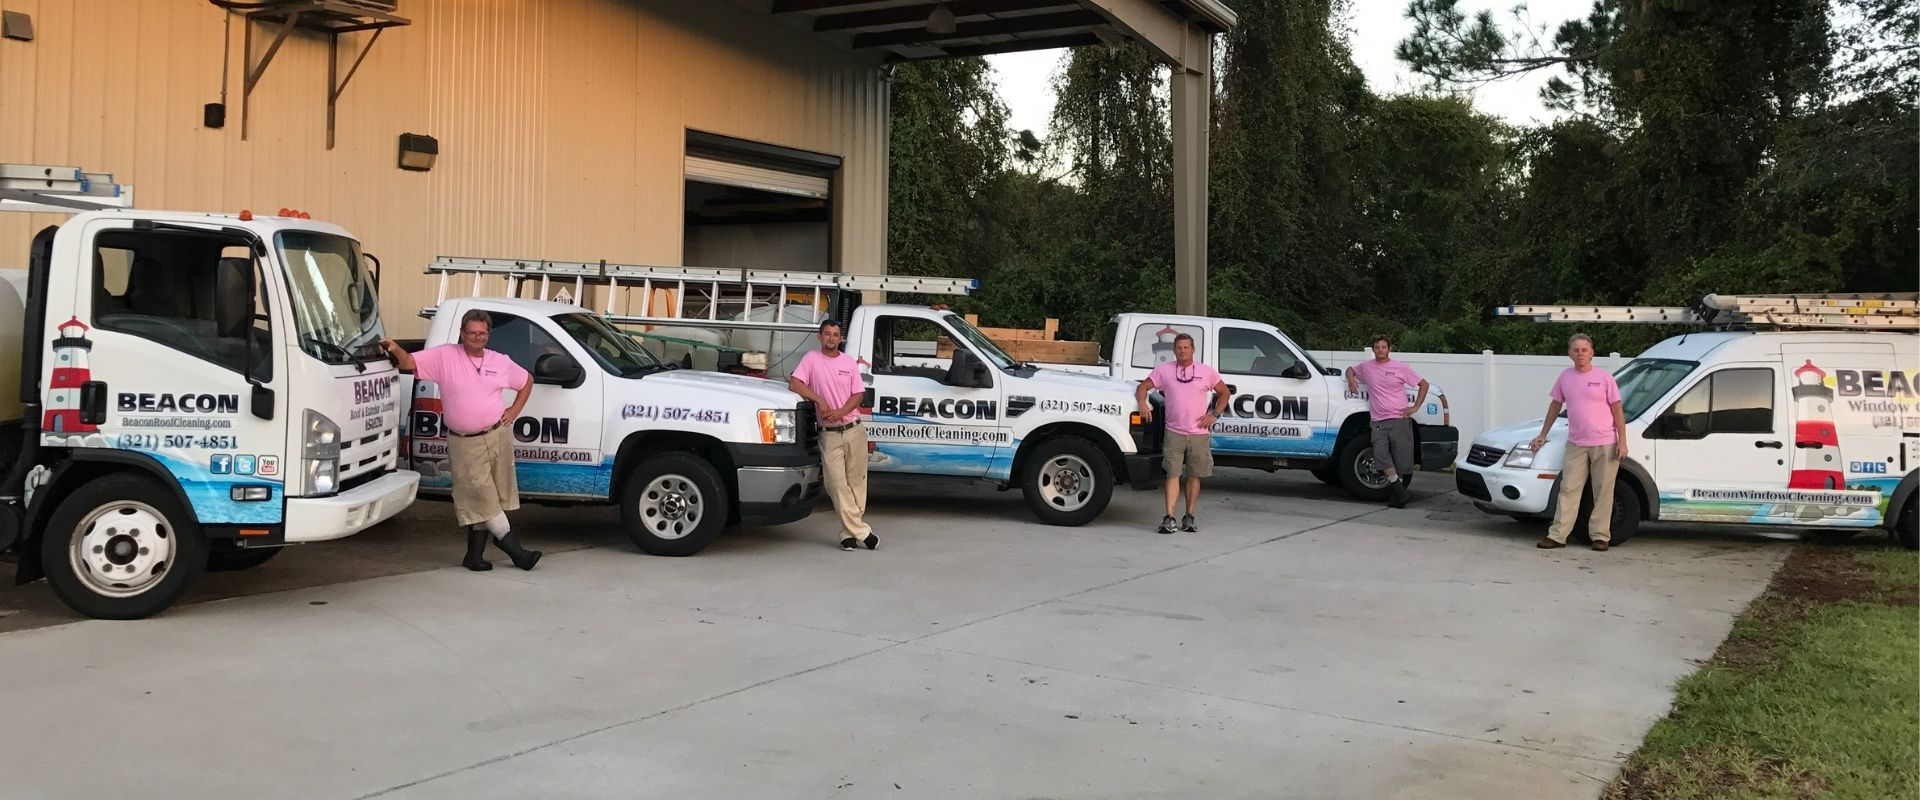 Beacon Roof and Exterior Cleaning